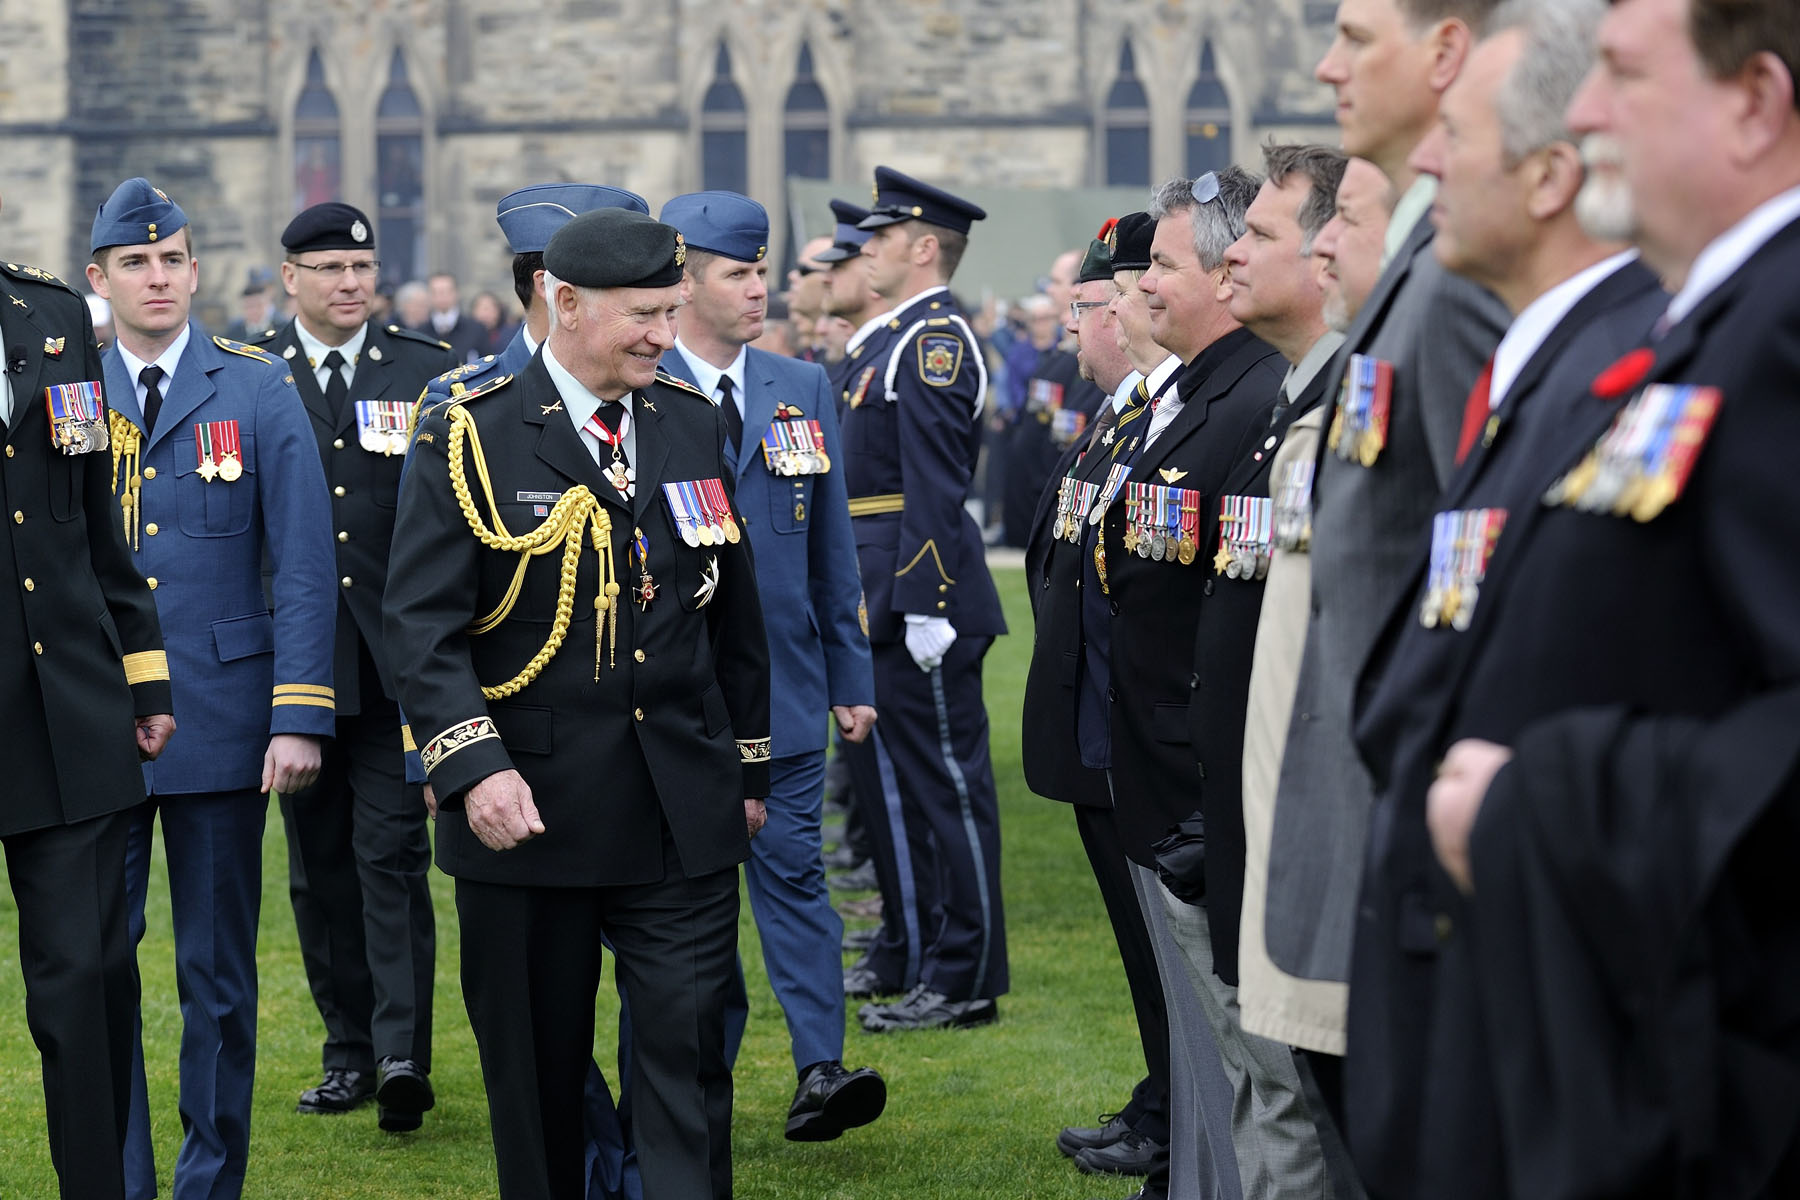 Following the ceremony, His Excellency inspected the National Day Of Honour Parade upon its arrival on Parliament Hill.